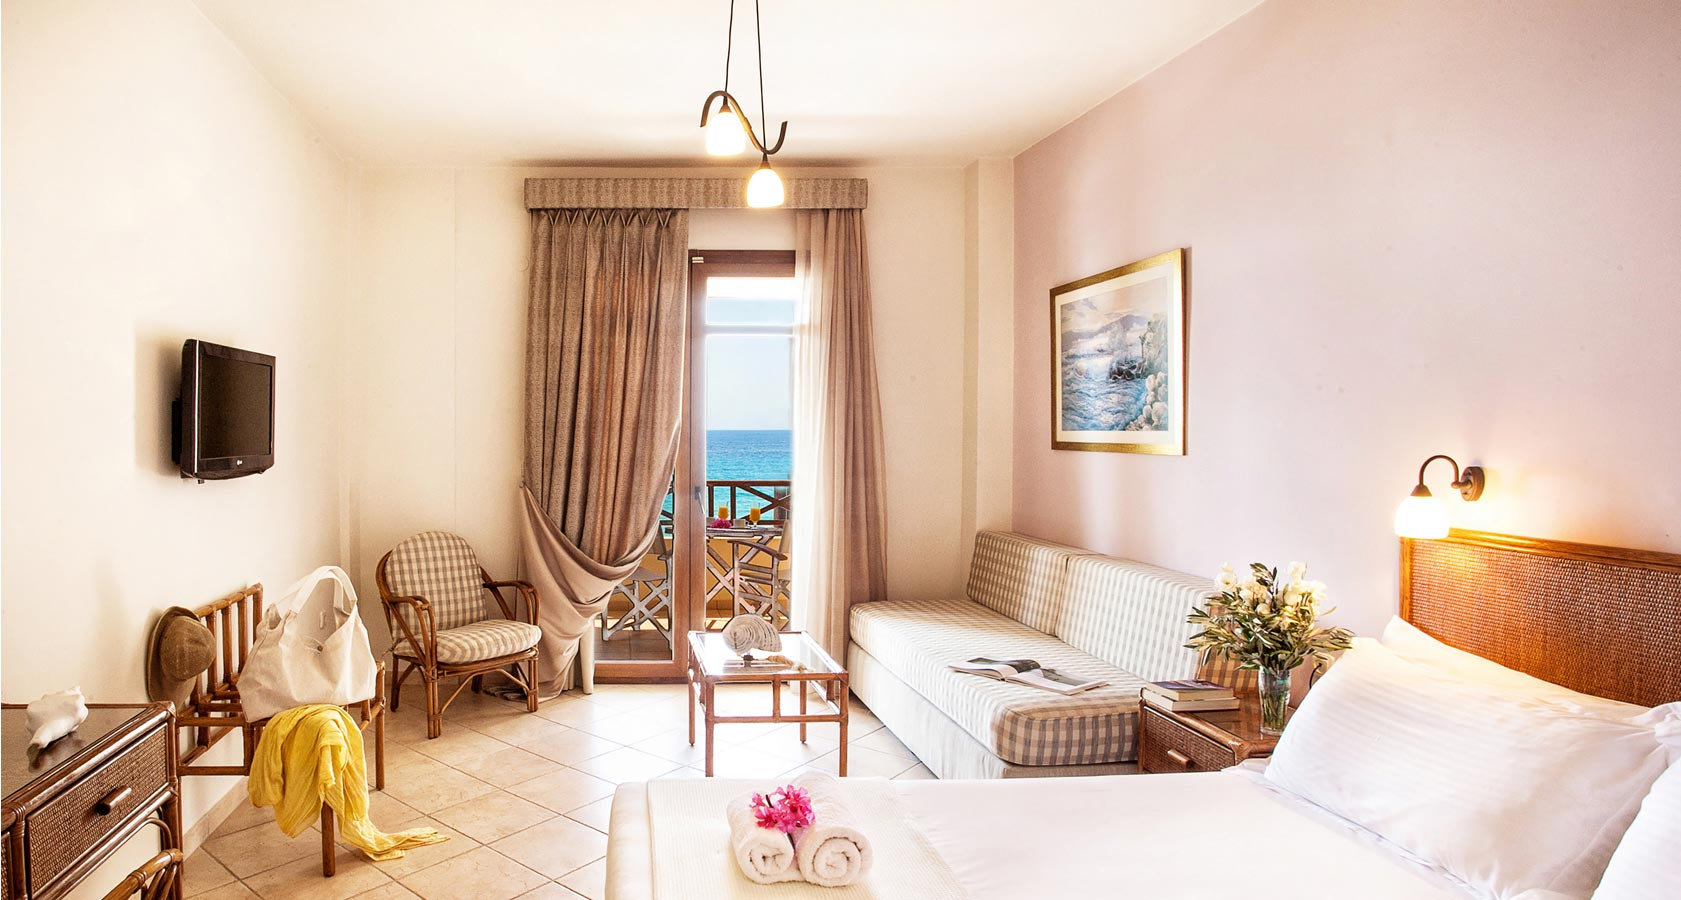 Interior of our hotel rooms in Possidi Halkidiki